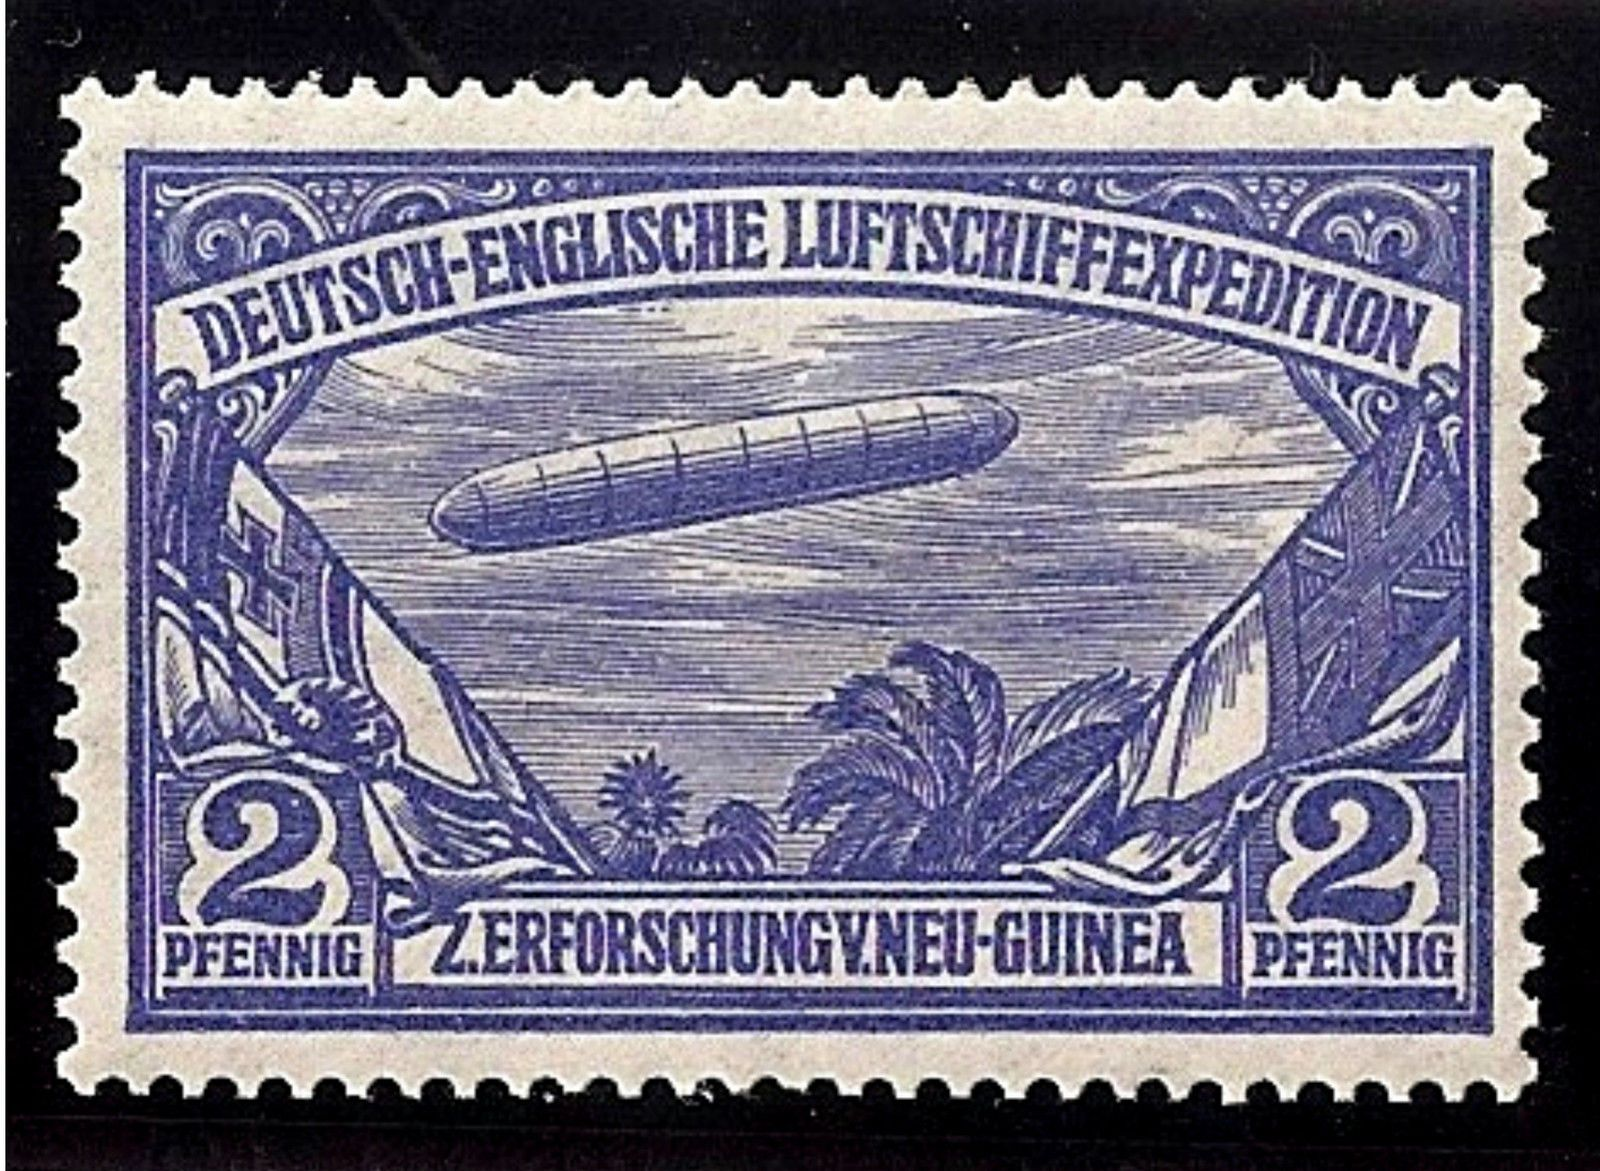 Pin on Stamps